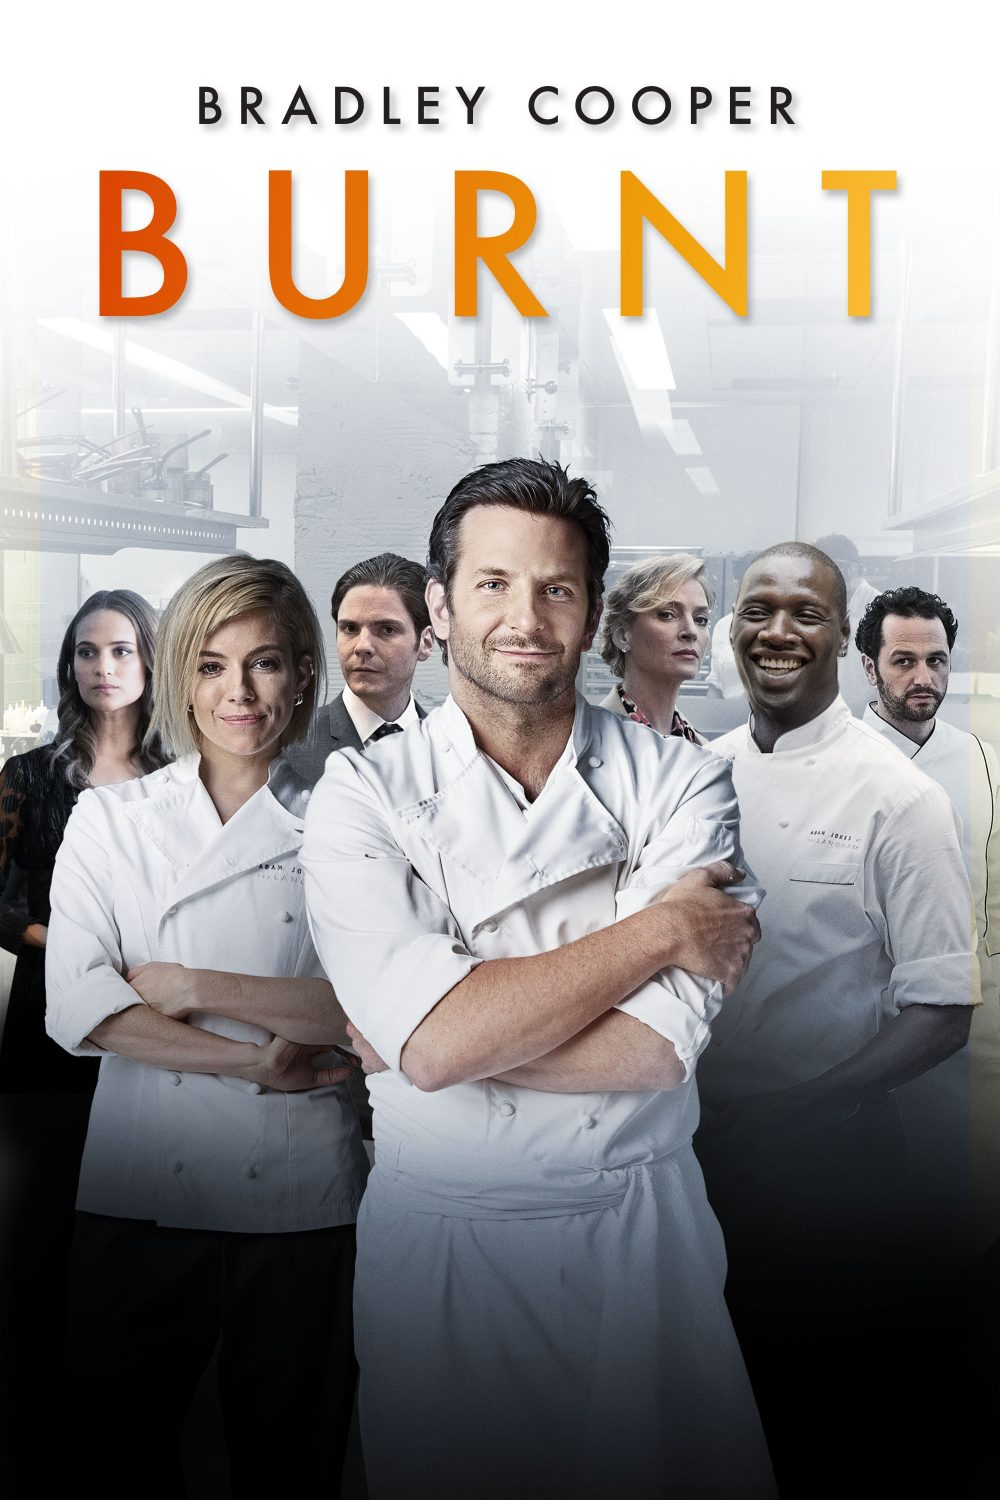 Burnt-filming-locations-poster